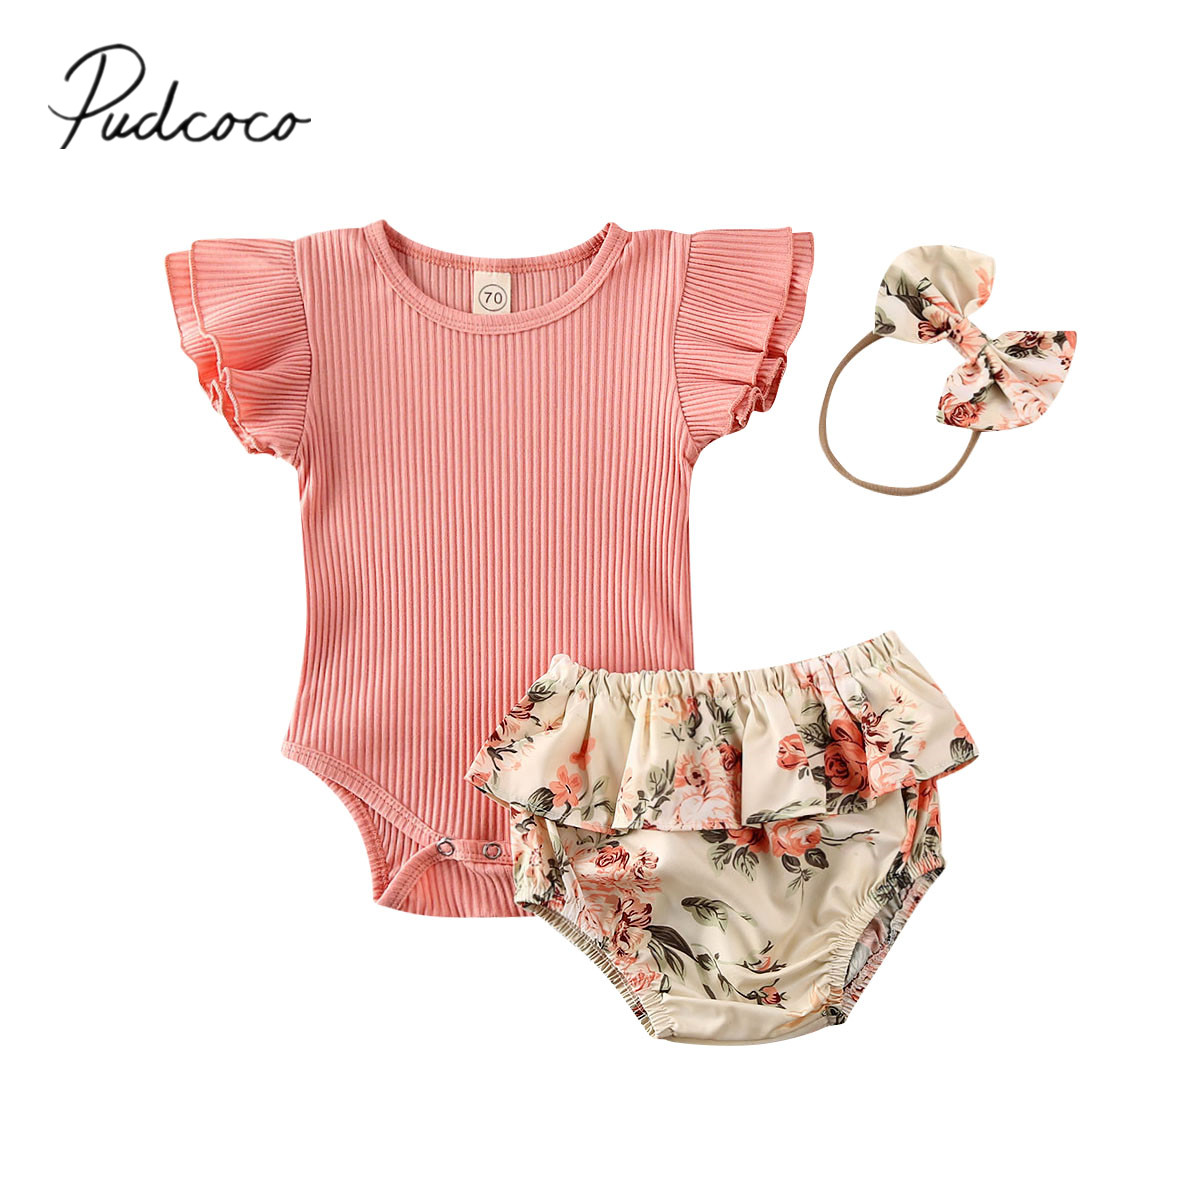 Newborn Infant Baby Girl Clothes Romper Jumpsuit Ruffle Bodysuit Floral Pants Outfits with Headband 3Pcs Sets